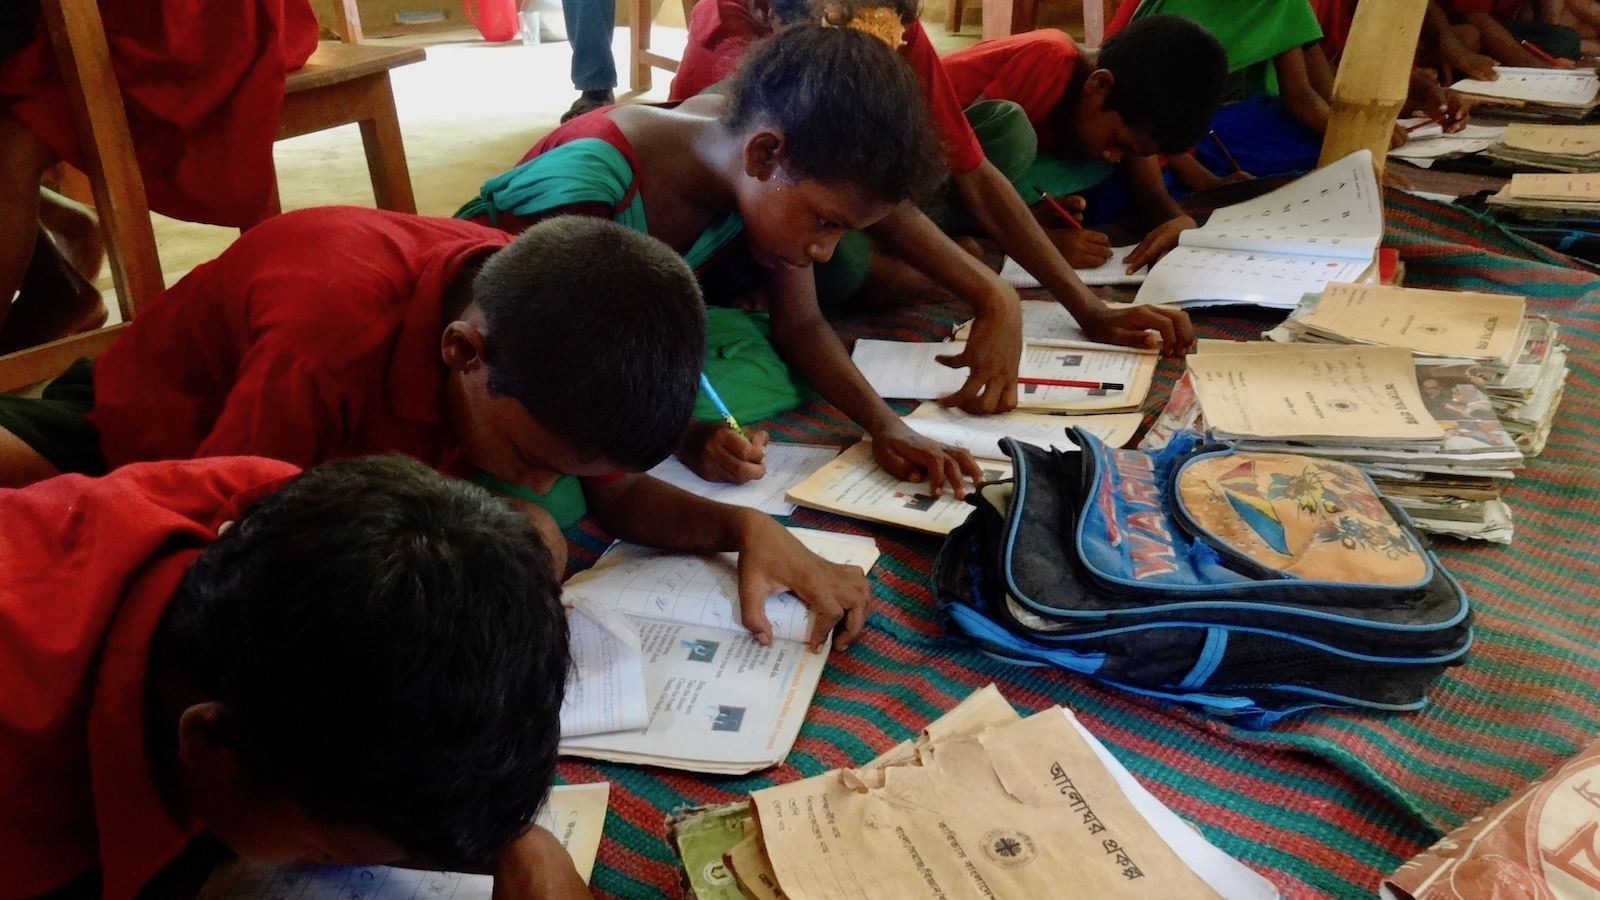 Students completing schoolwork in Bangladesh, 2014.